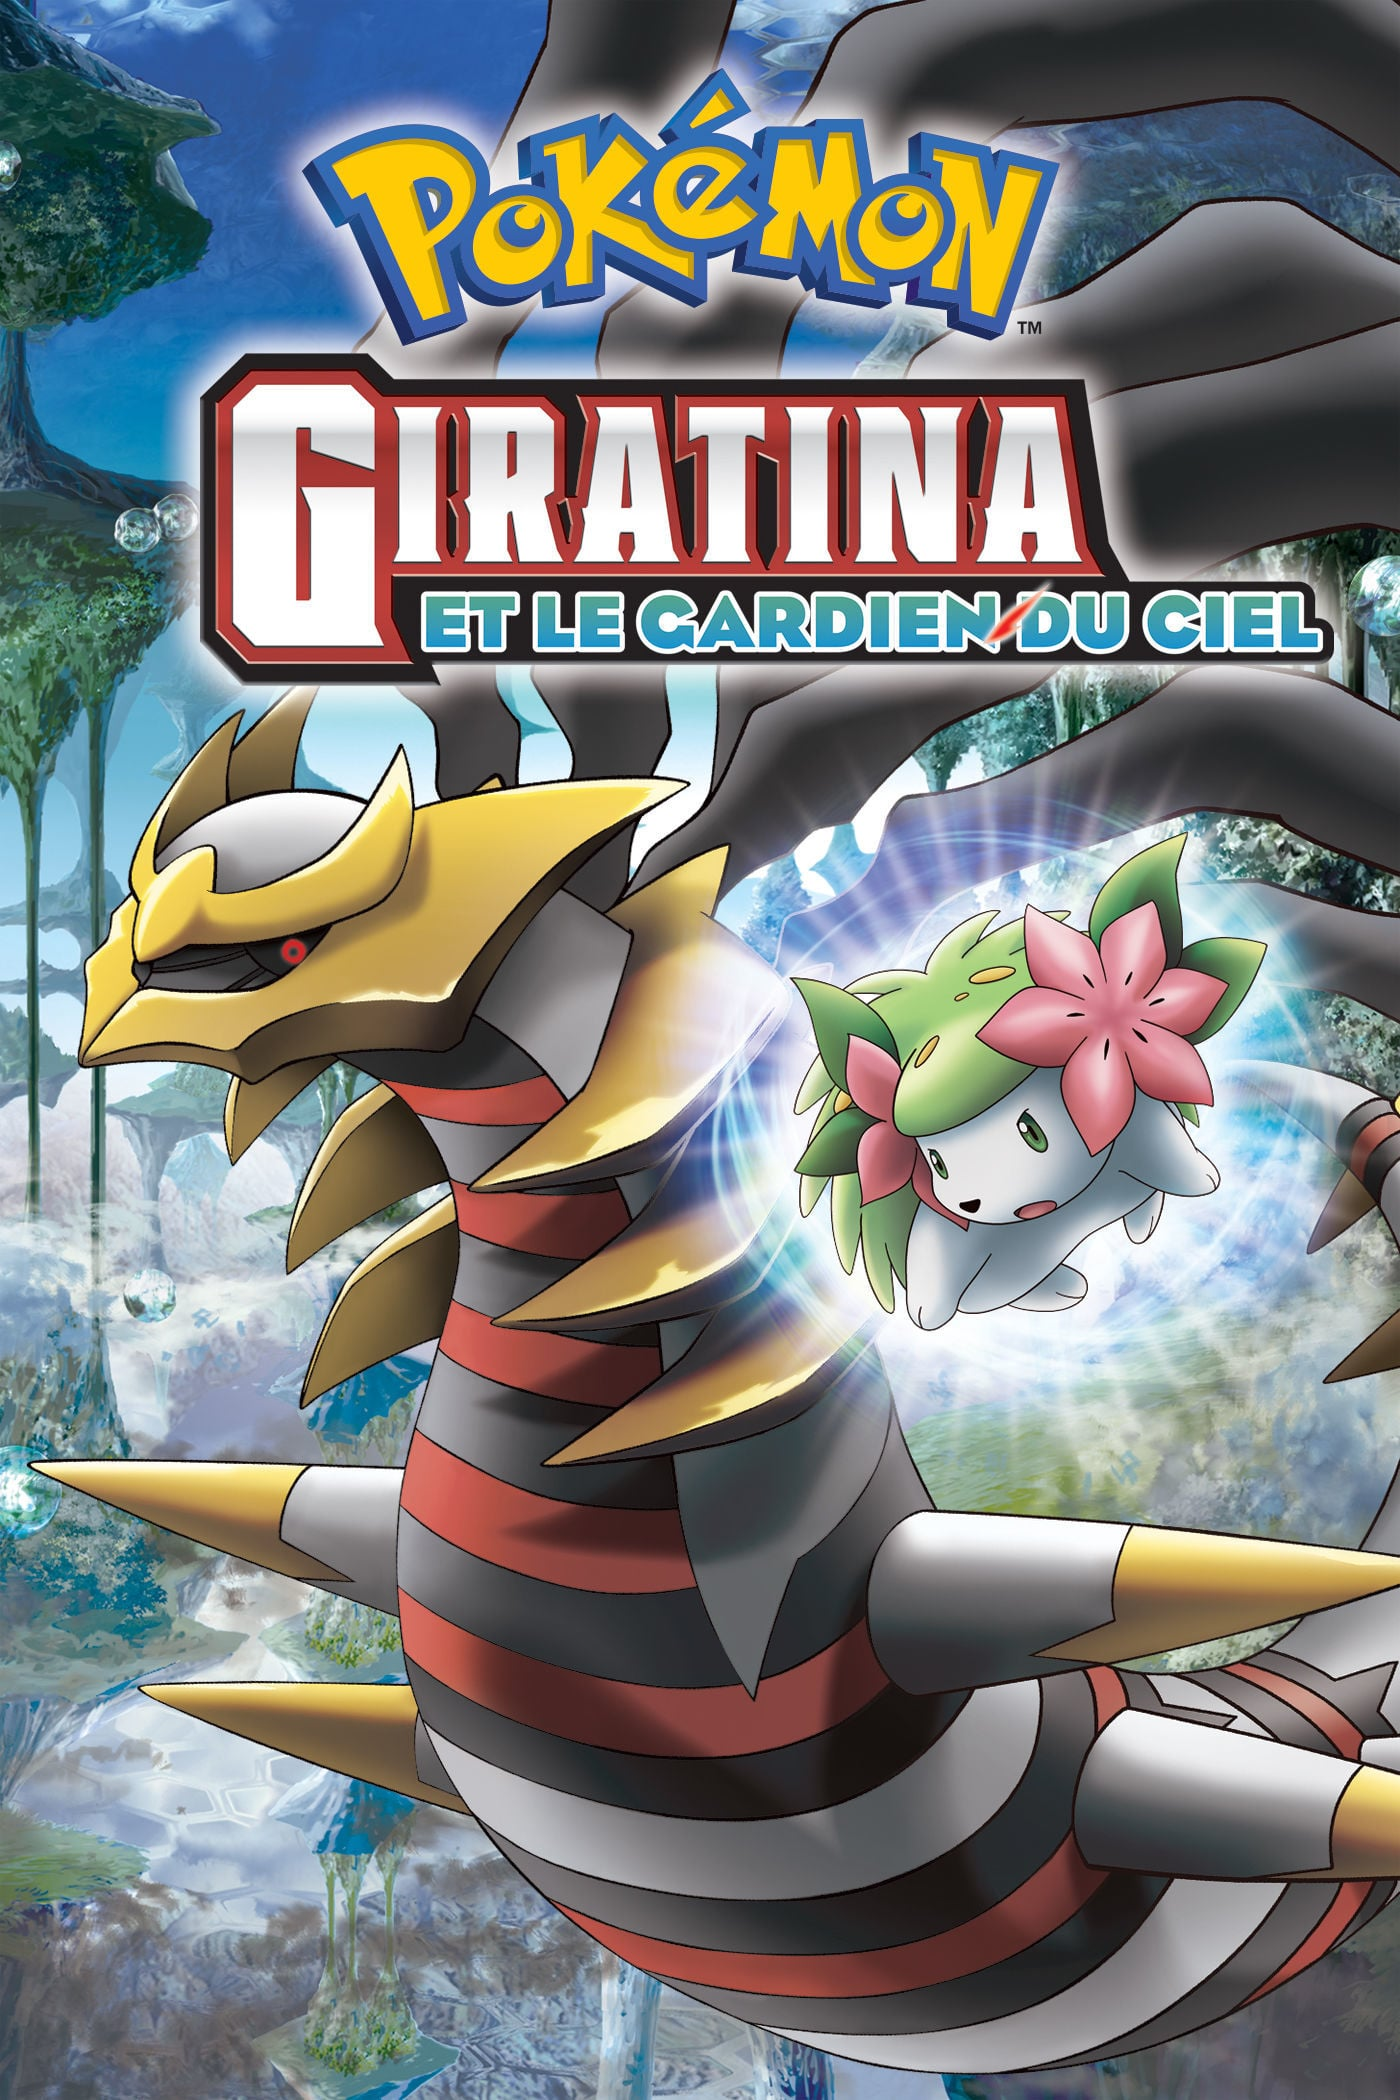 Pokémon : Giratina and the Sky Warrior